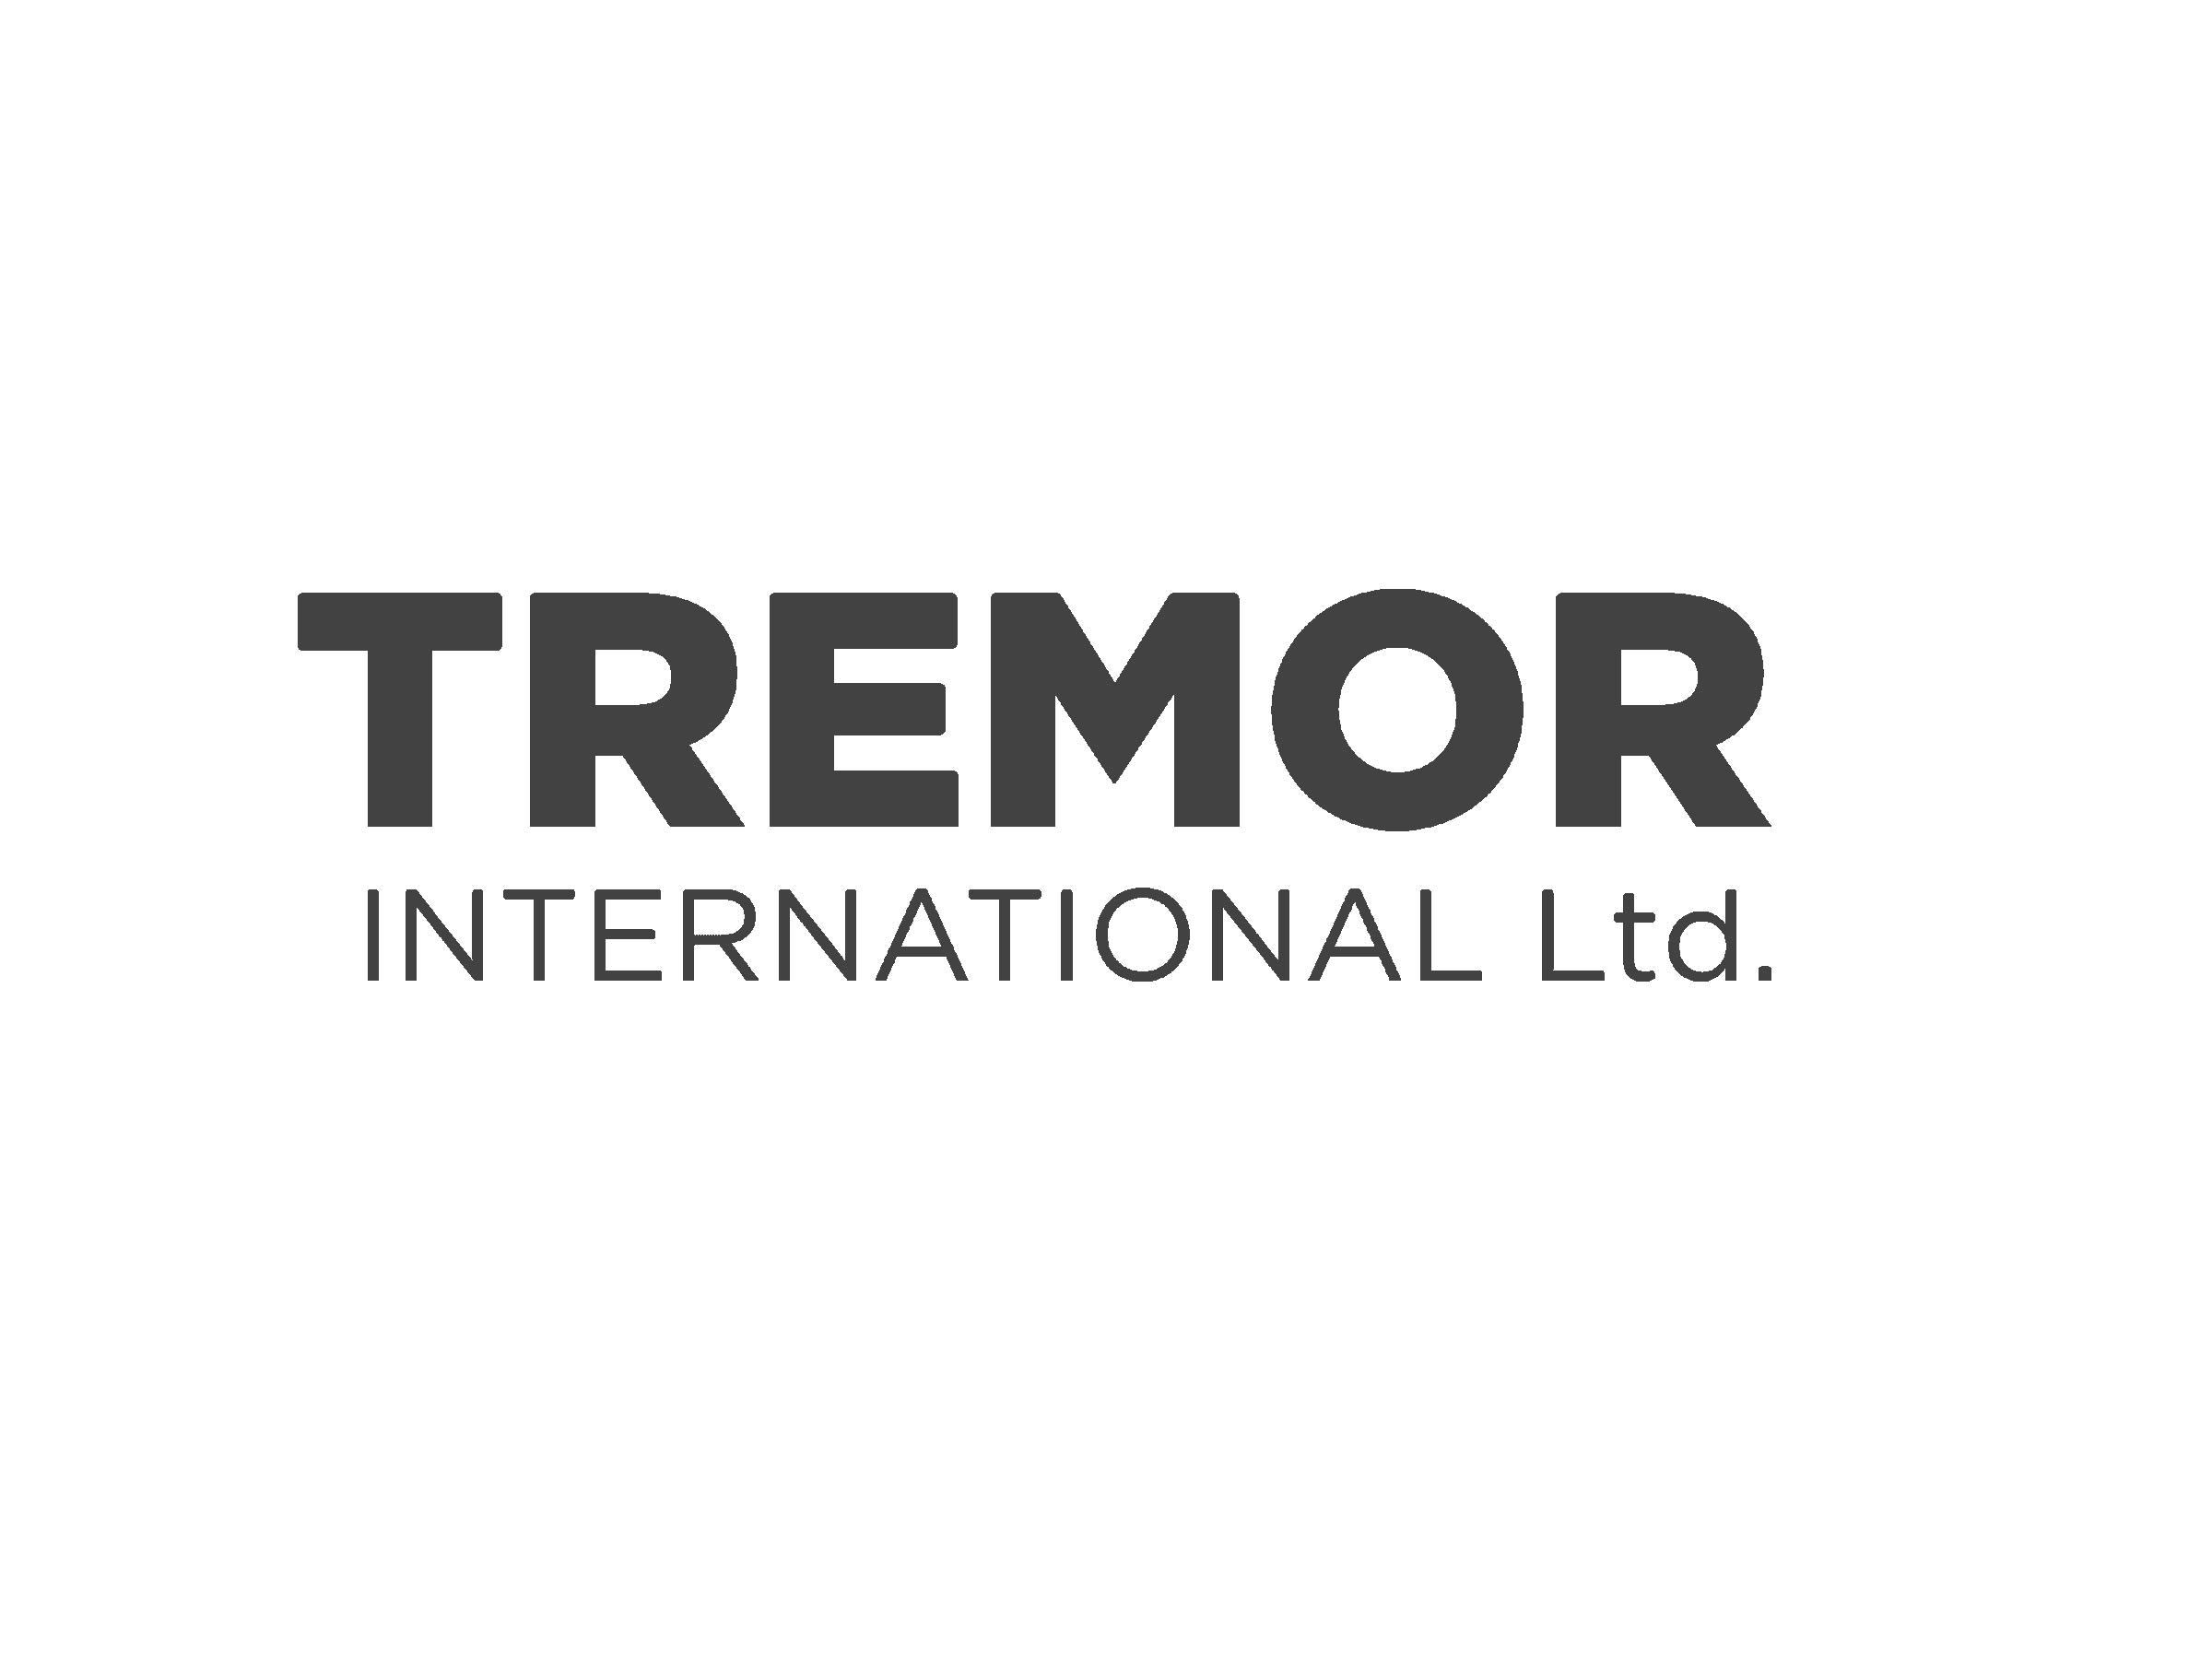 VIDEO: Video ad player Tremor International walks through its 2019 results and future plans (TRMR)